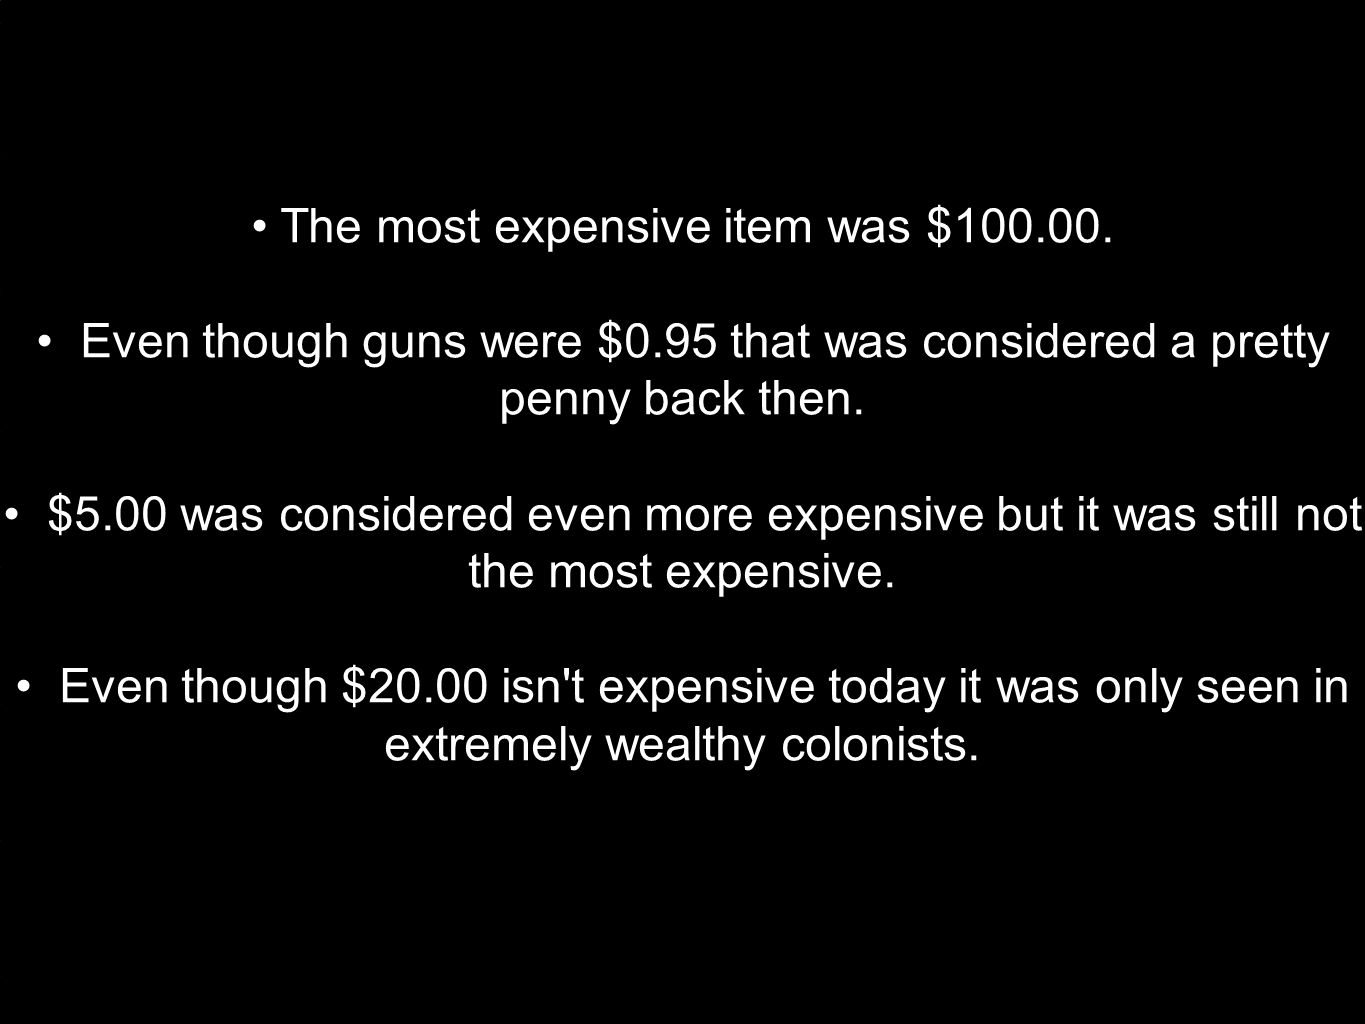 The most expensive item was $